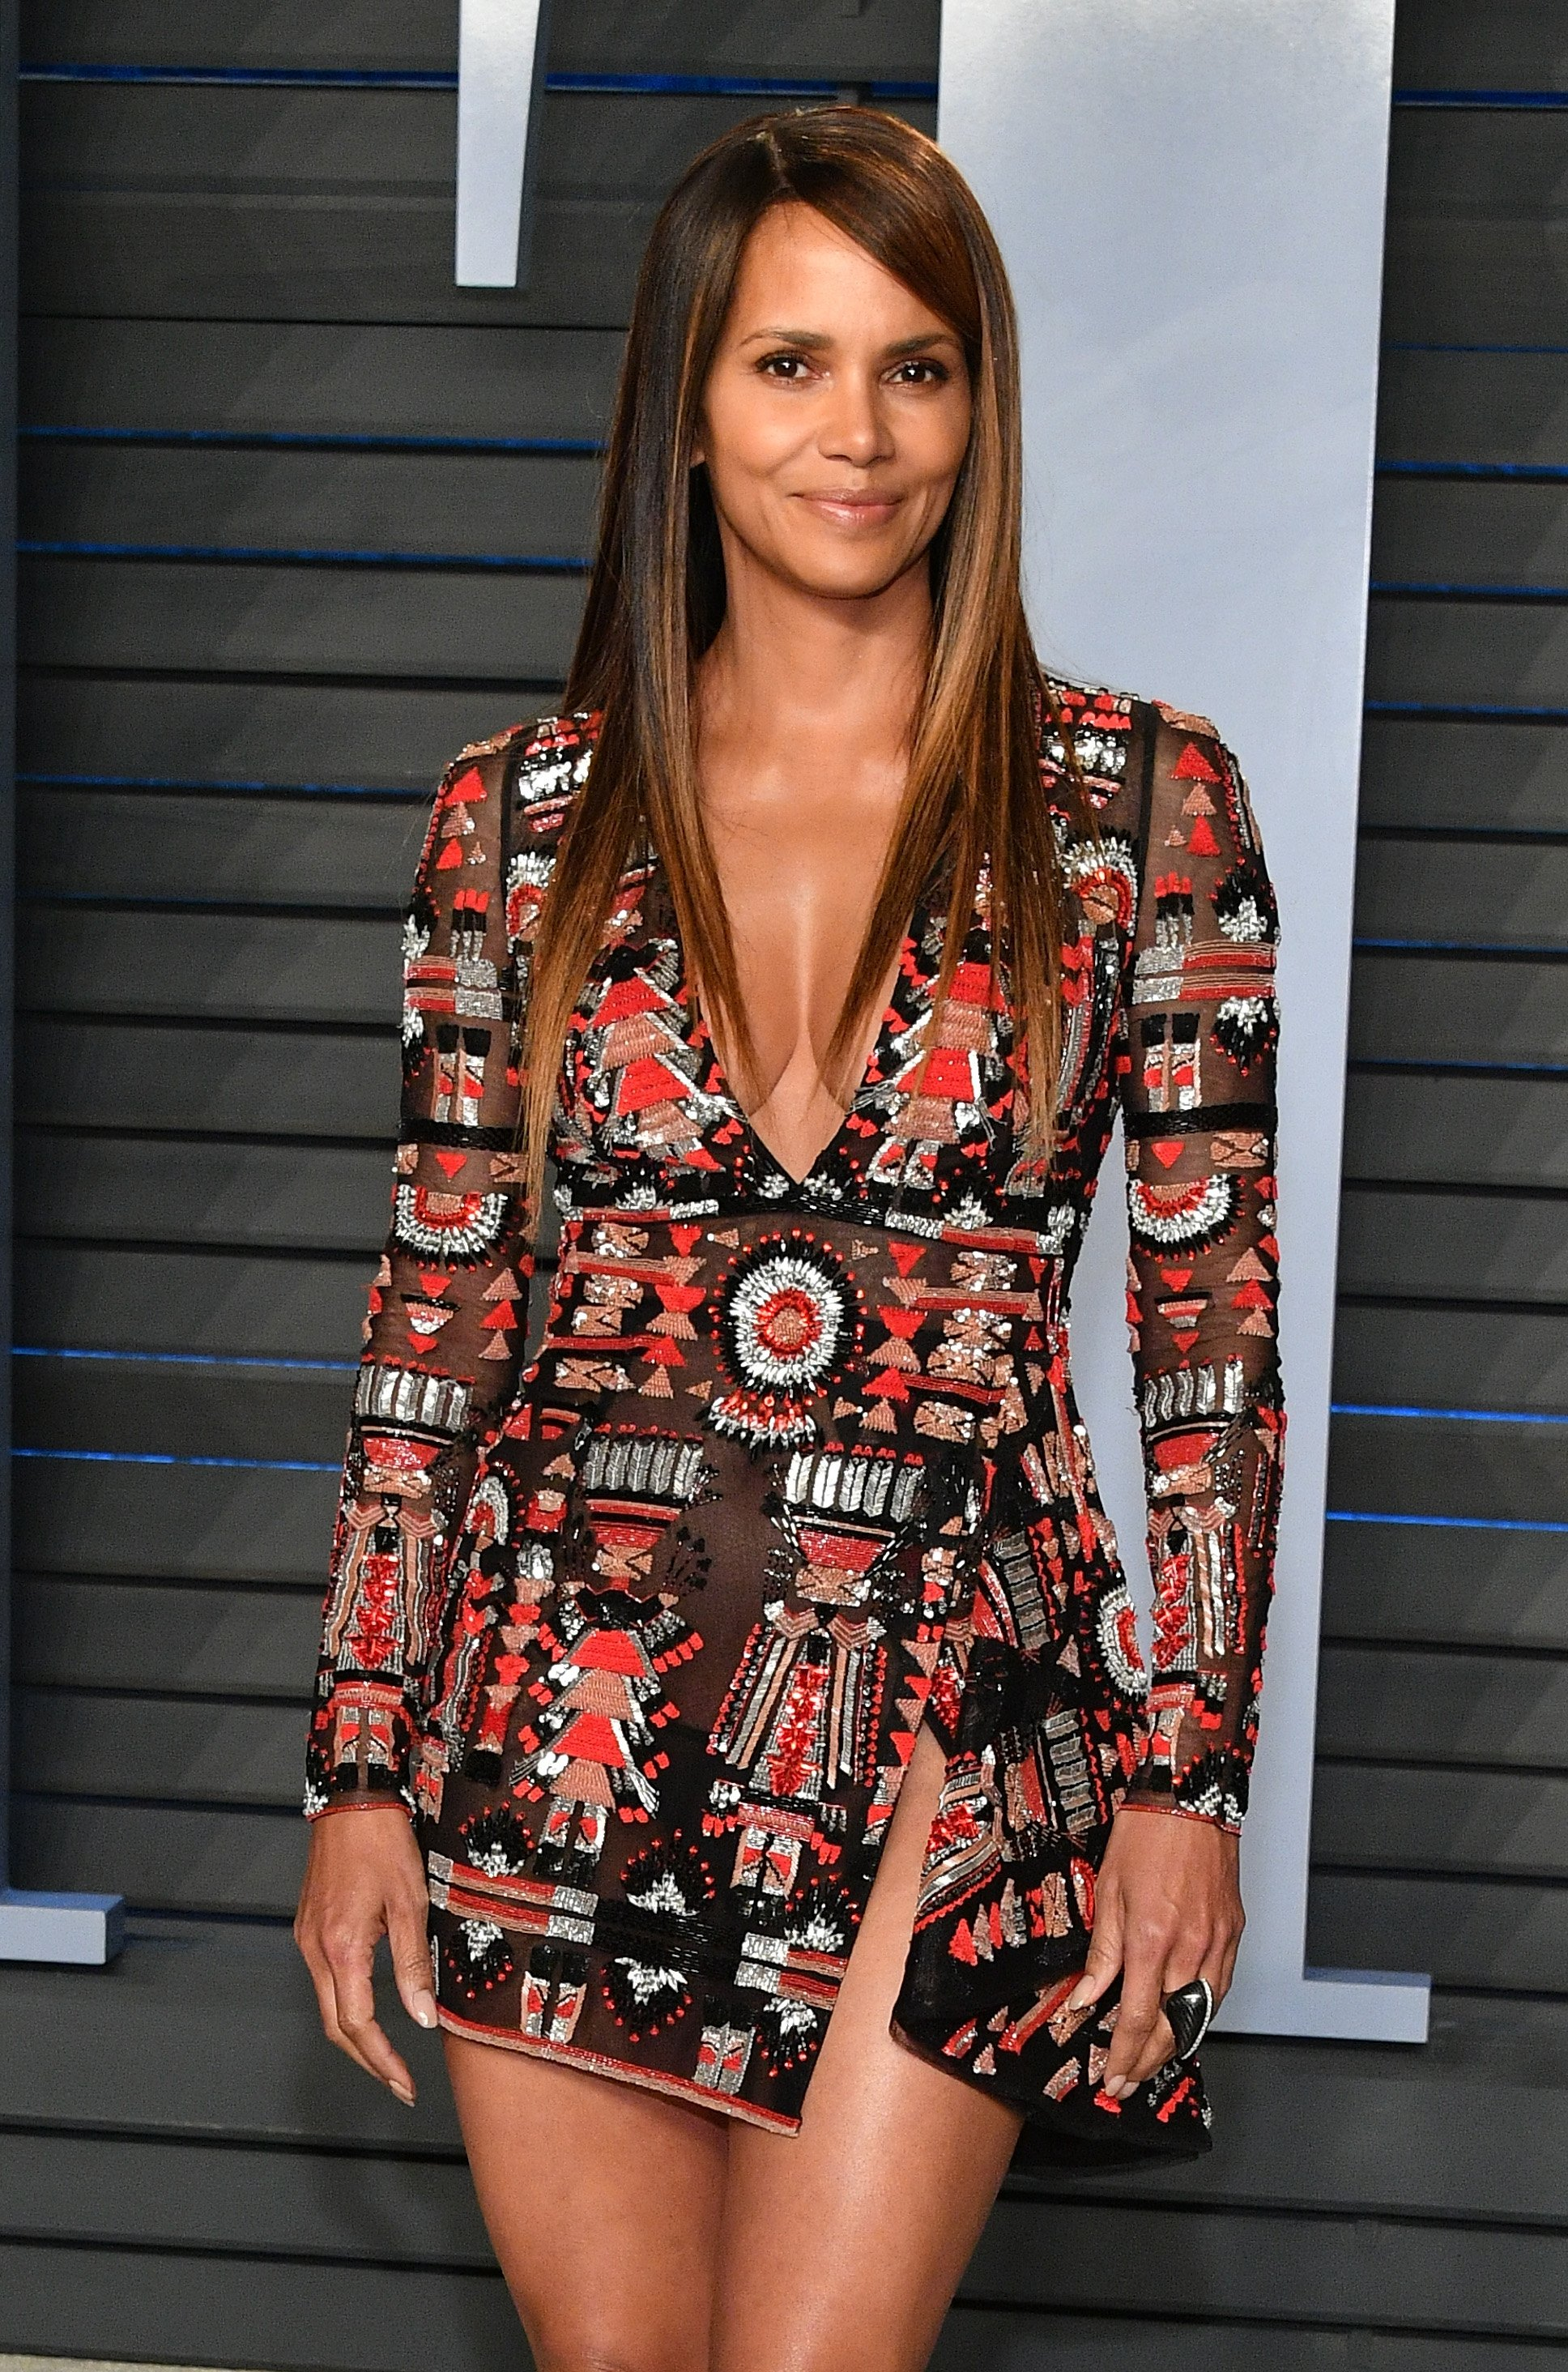 Halle Berry at the 2018 Vanity Fair Oscar Party at Wallis Annenberg Center for the Performing Arts on March 4, 2018 in Beverly Hills, California.|Source: Getty Images